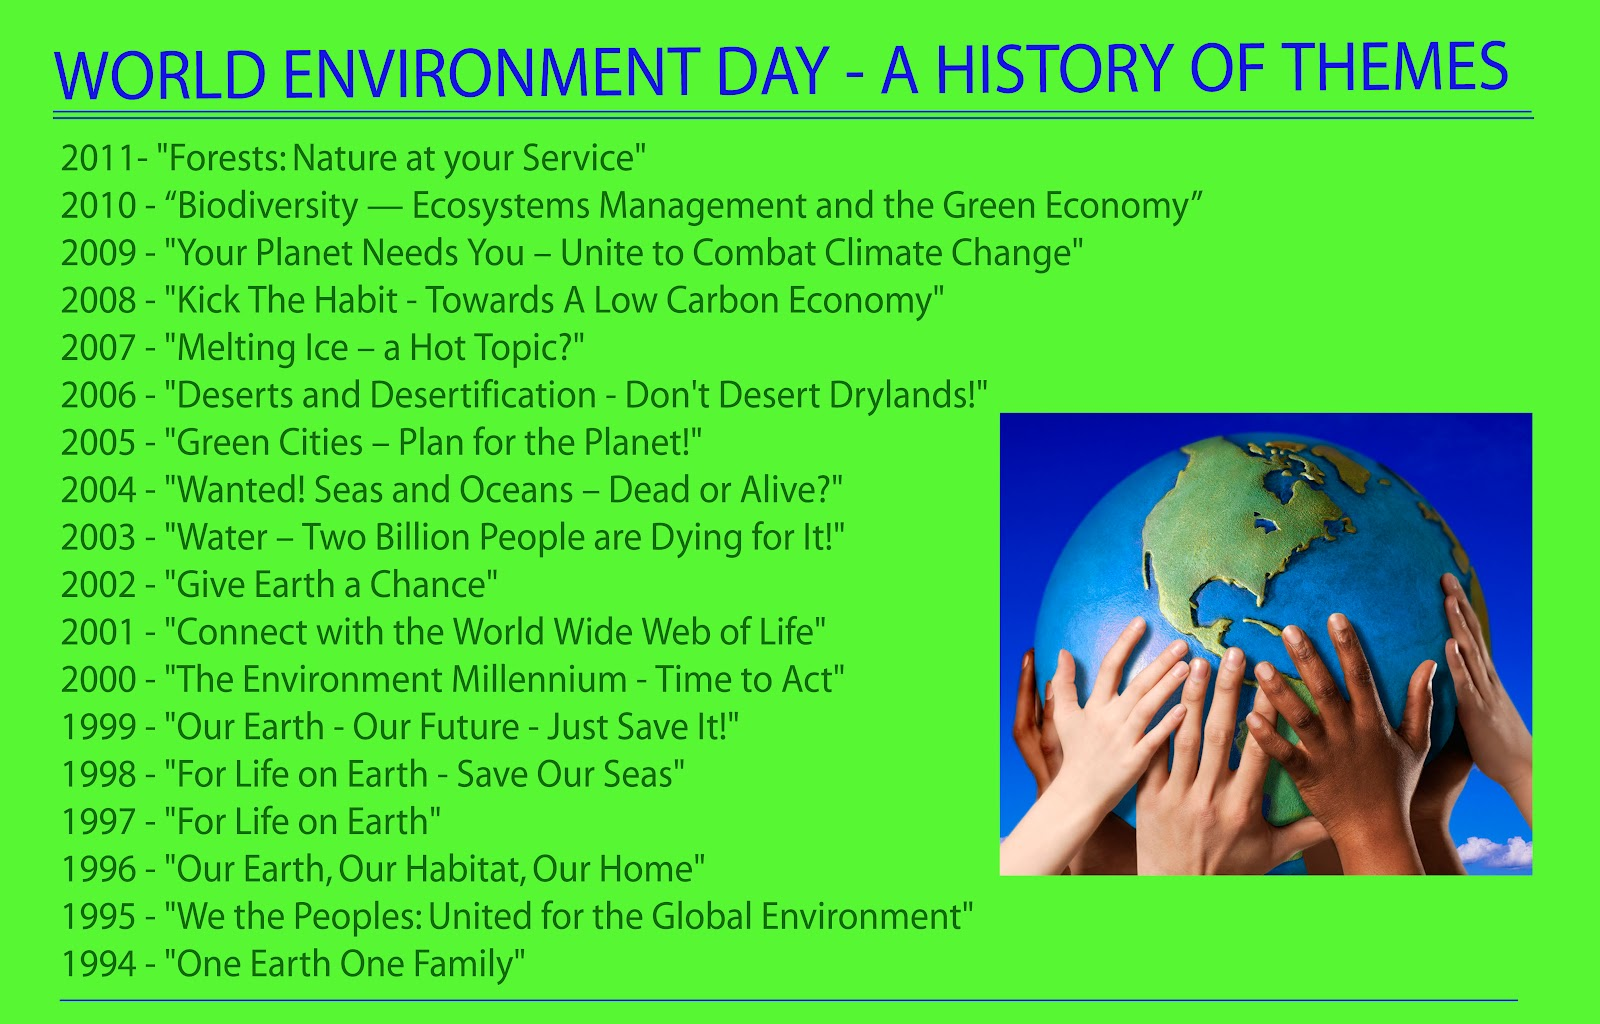 environment day essay in english Related post of essay on environment day in english partner essay proposal argument essay on gun control closing sentence for scholarship essay commune bessay sur.